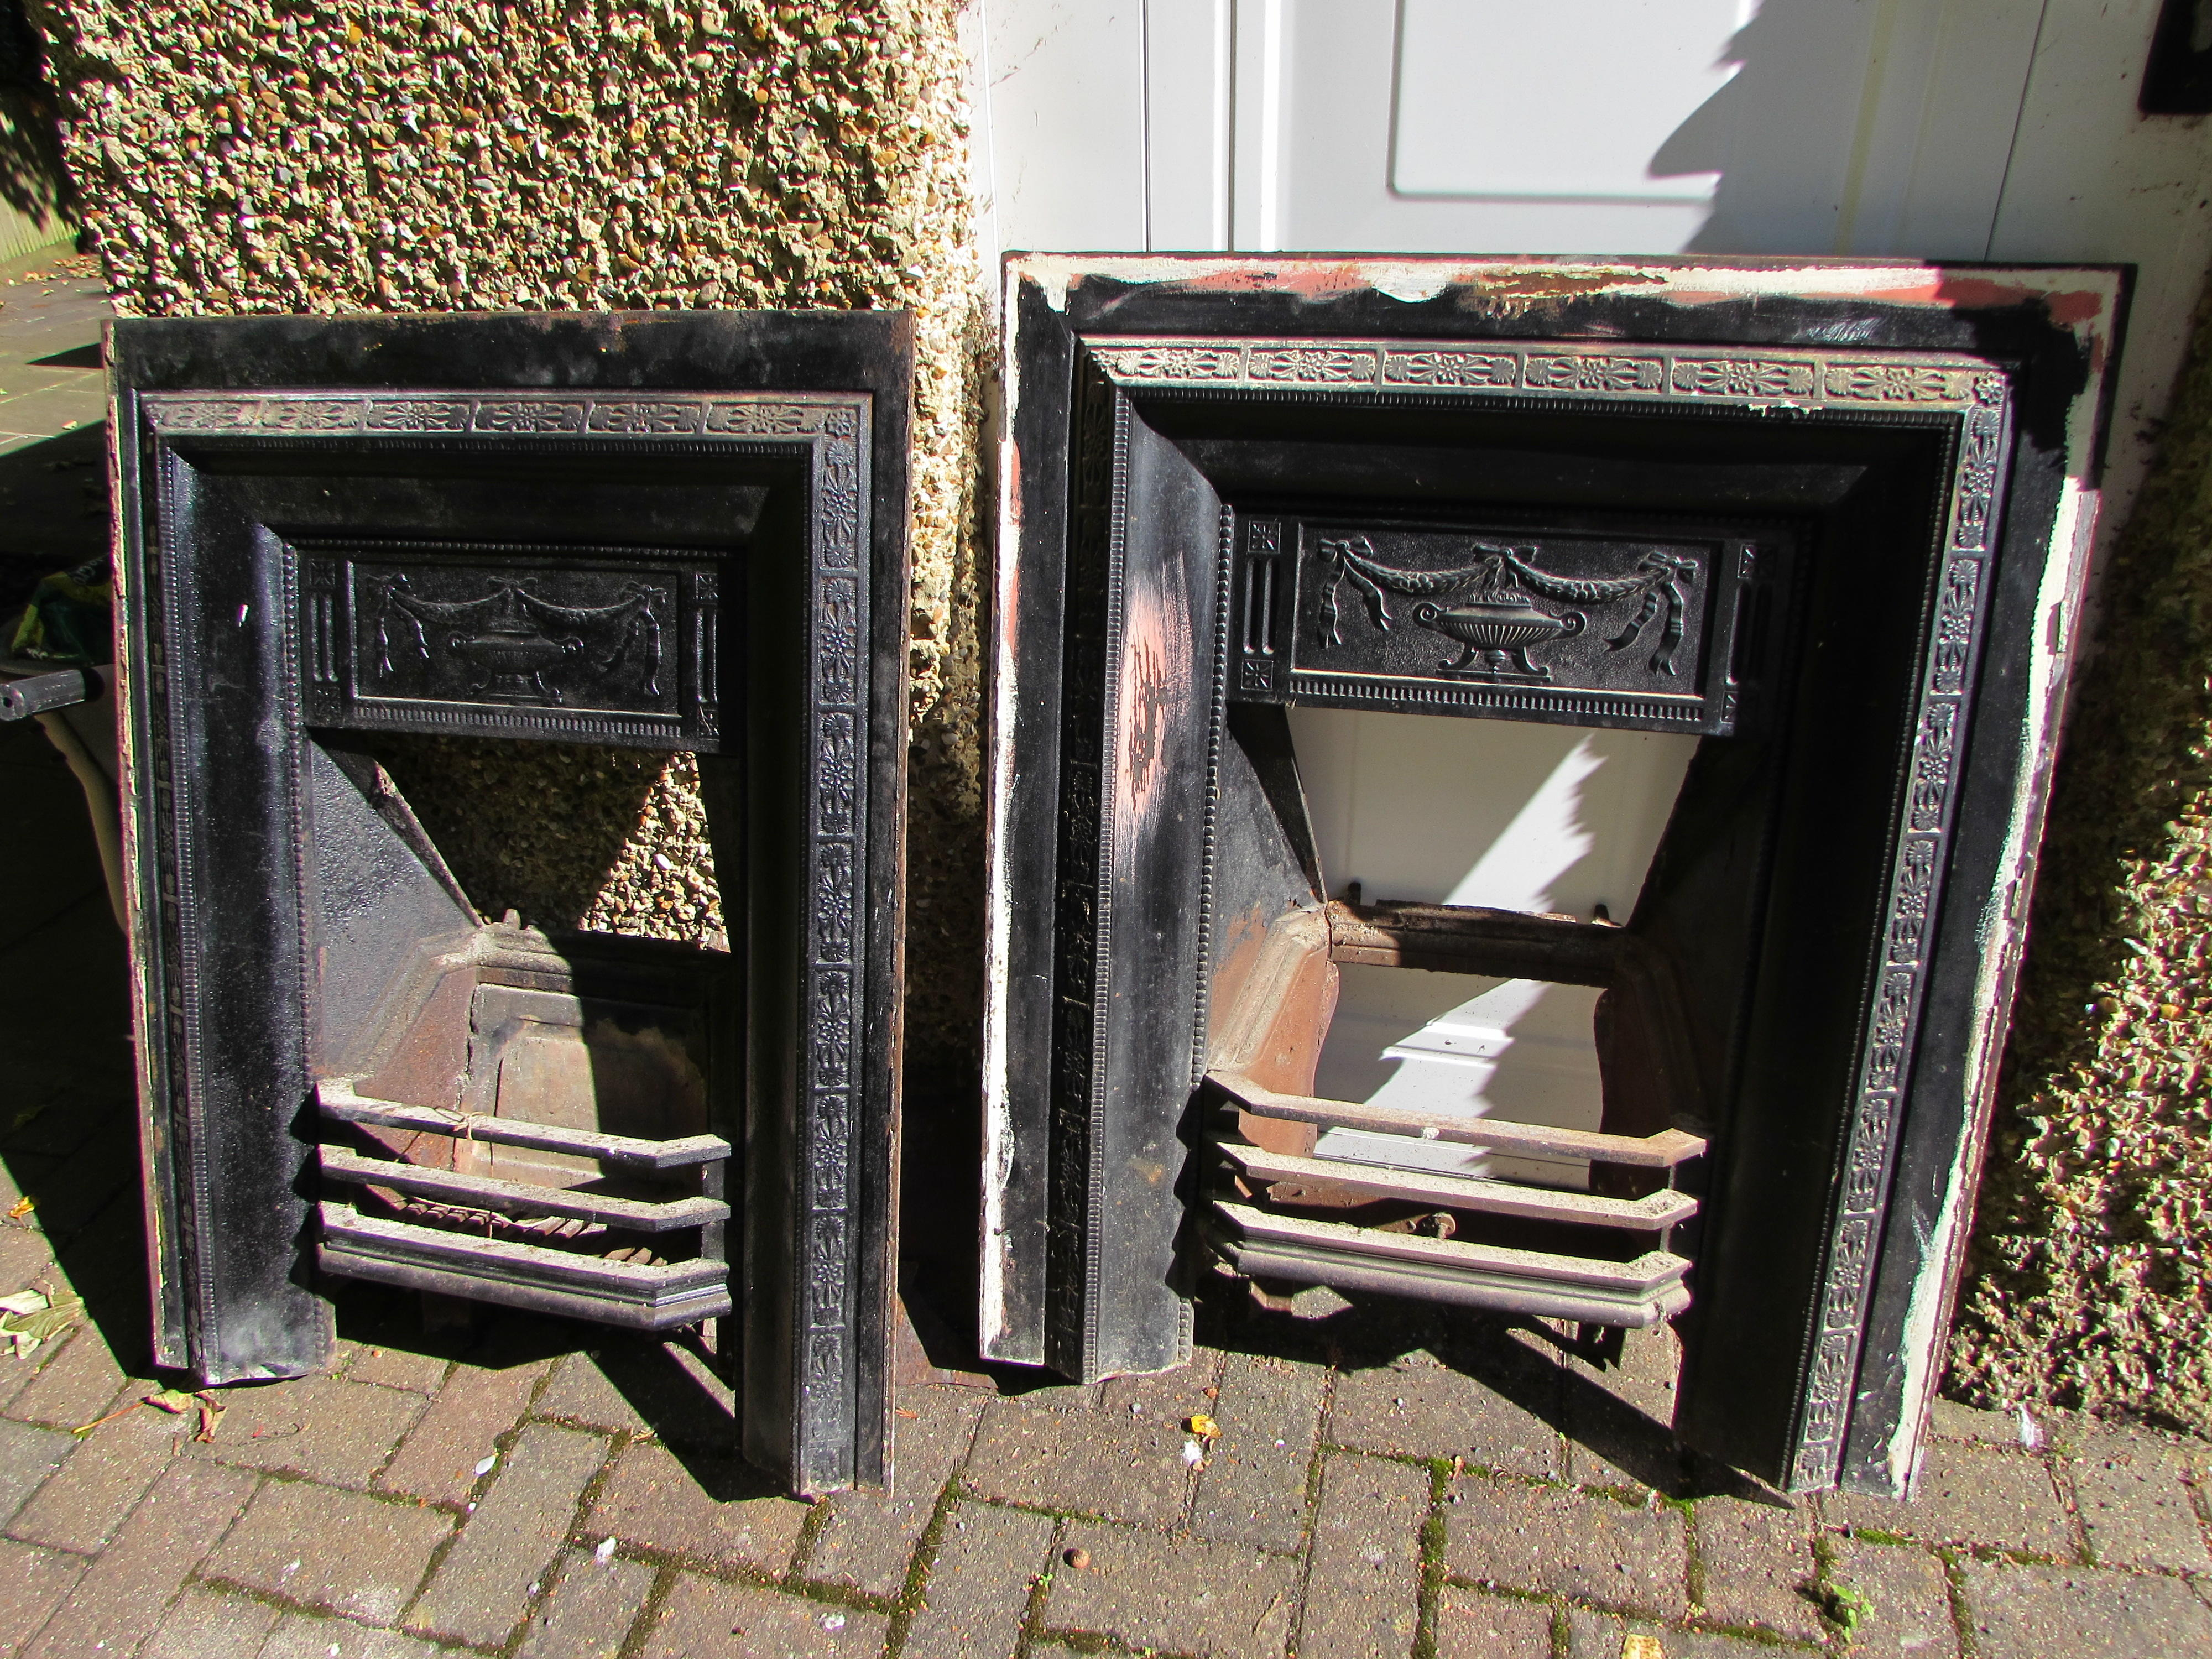 2 x antique iron fireplaces complete with wooden surrounds